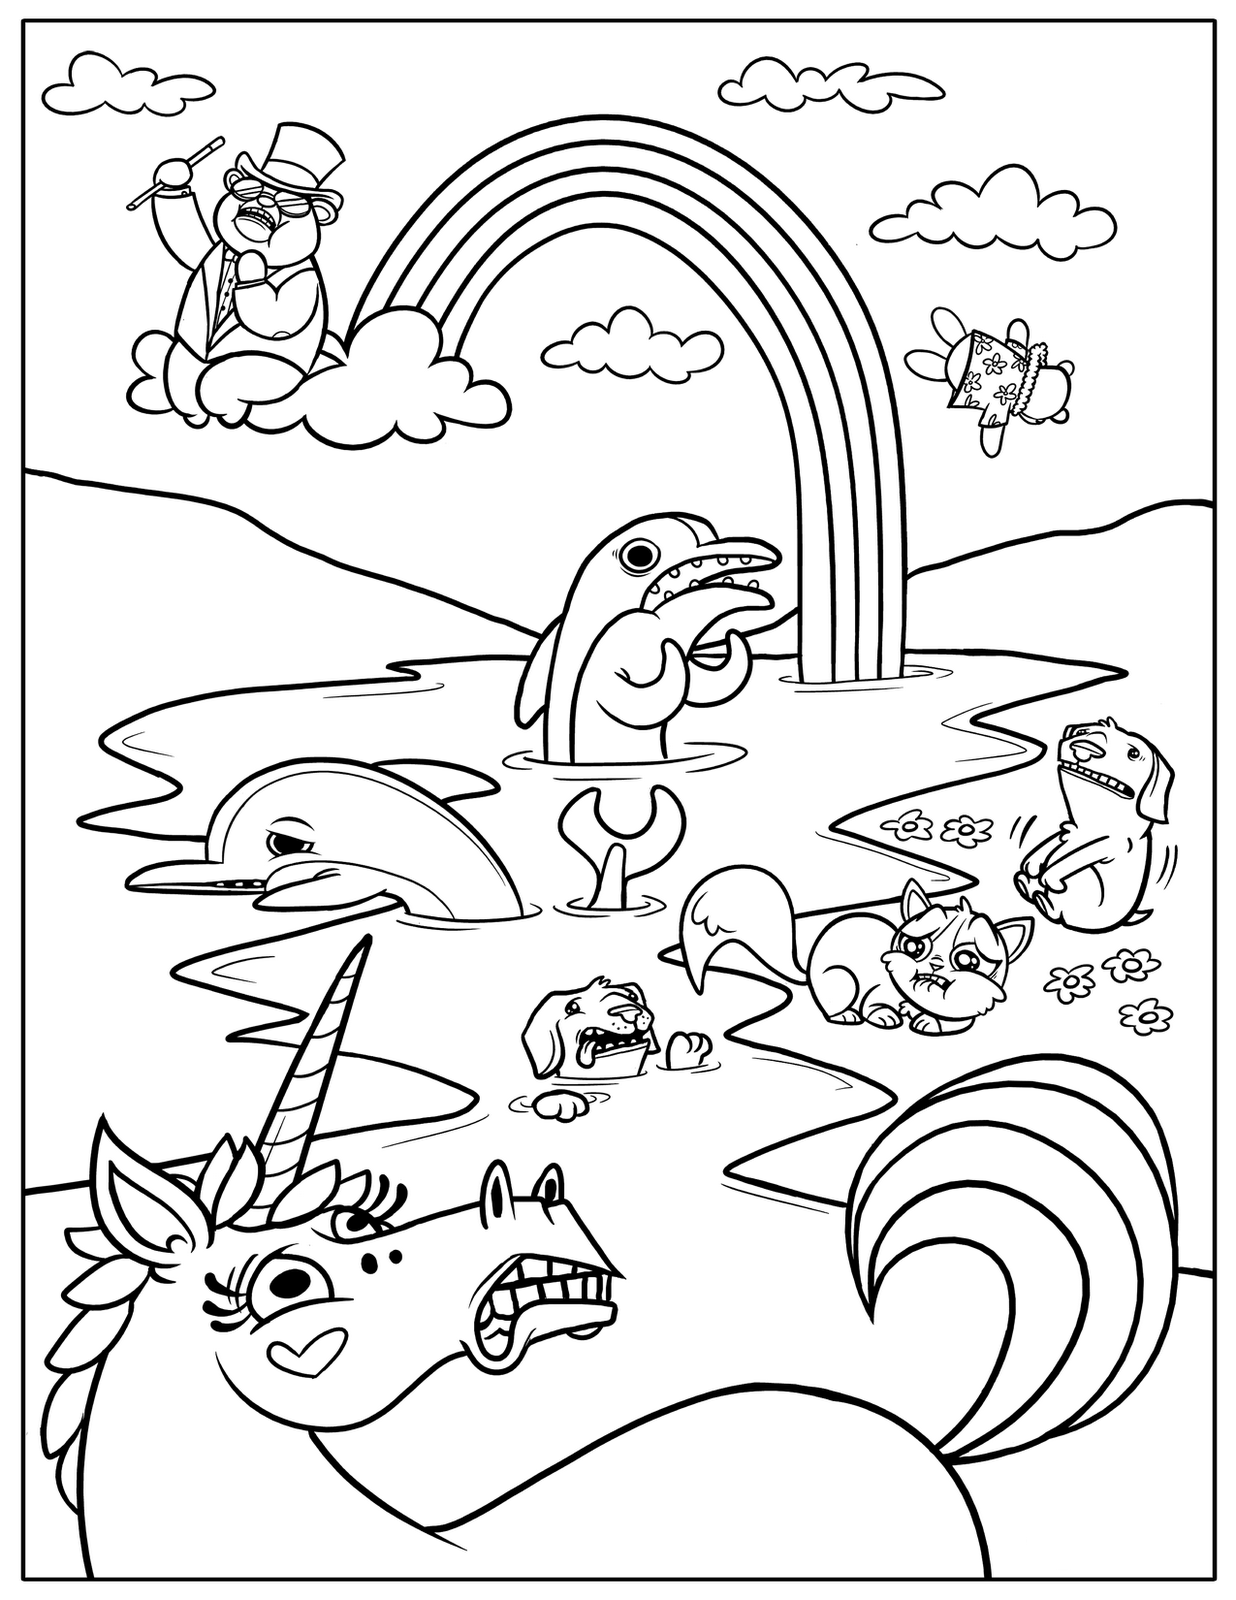 Gallery Of Free Coloring Pages For Kids Inspirational Printable For